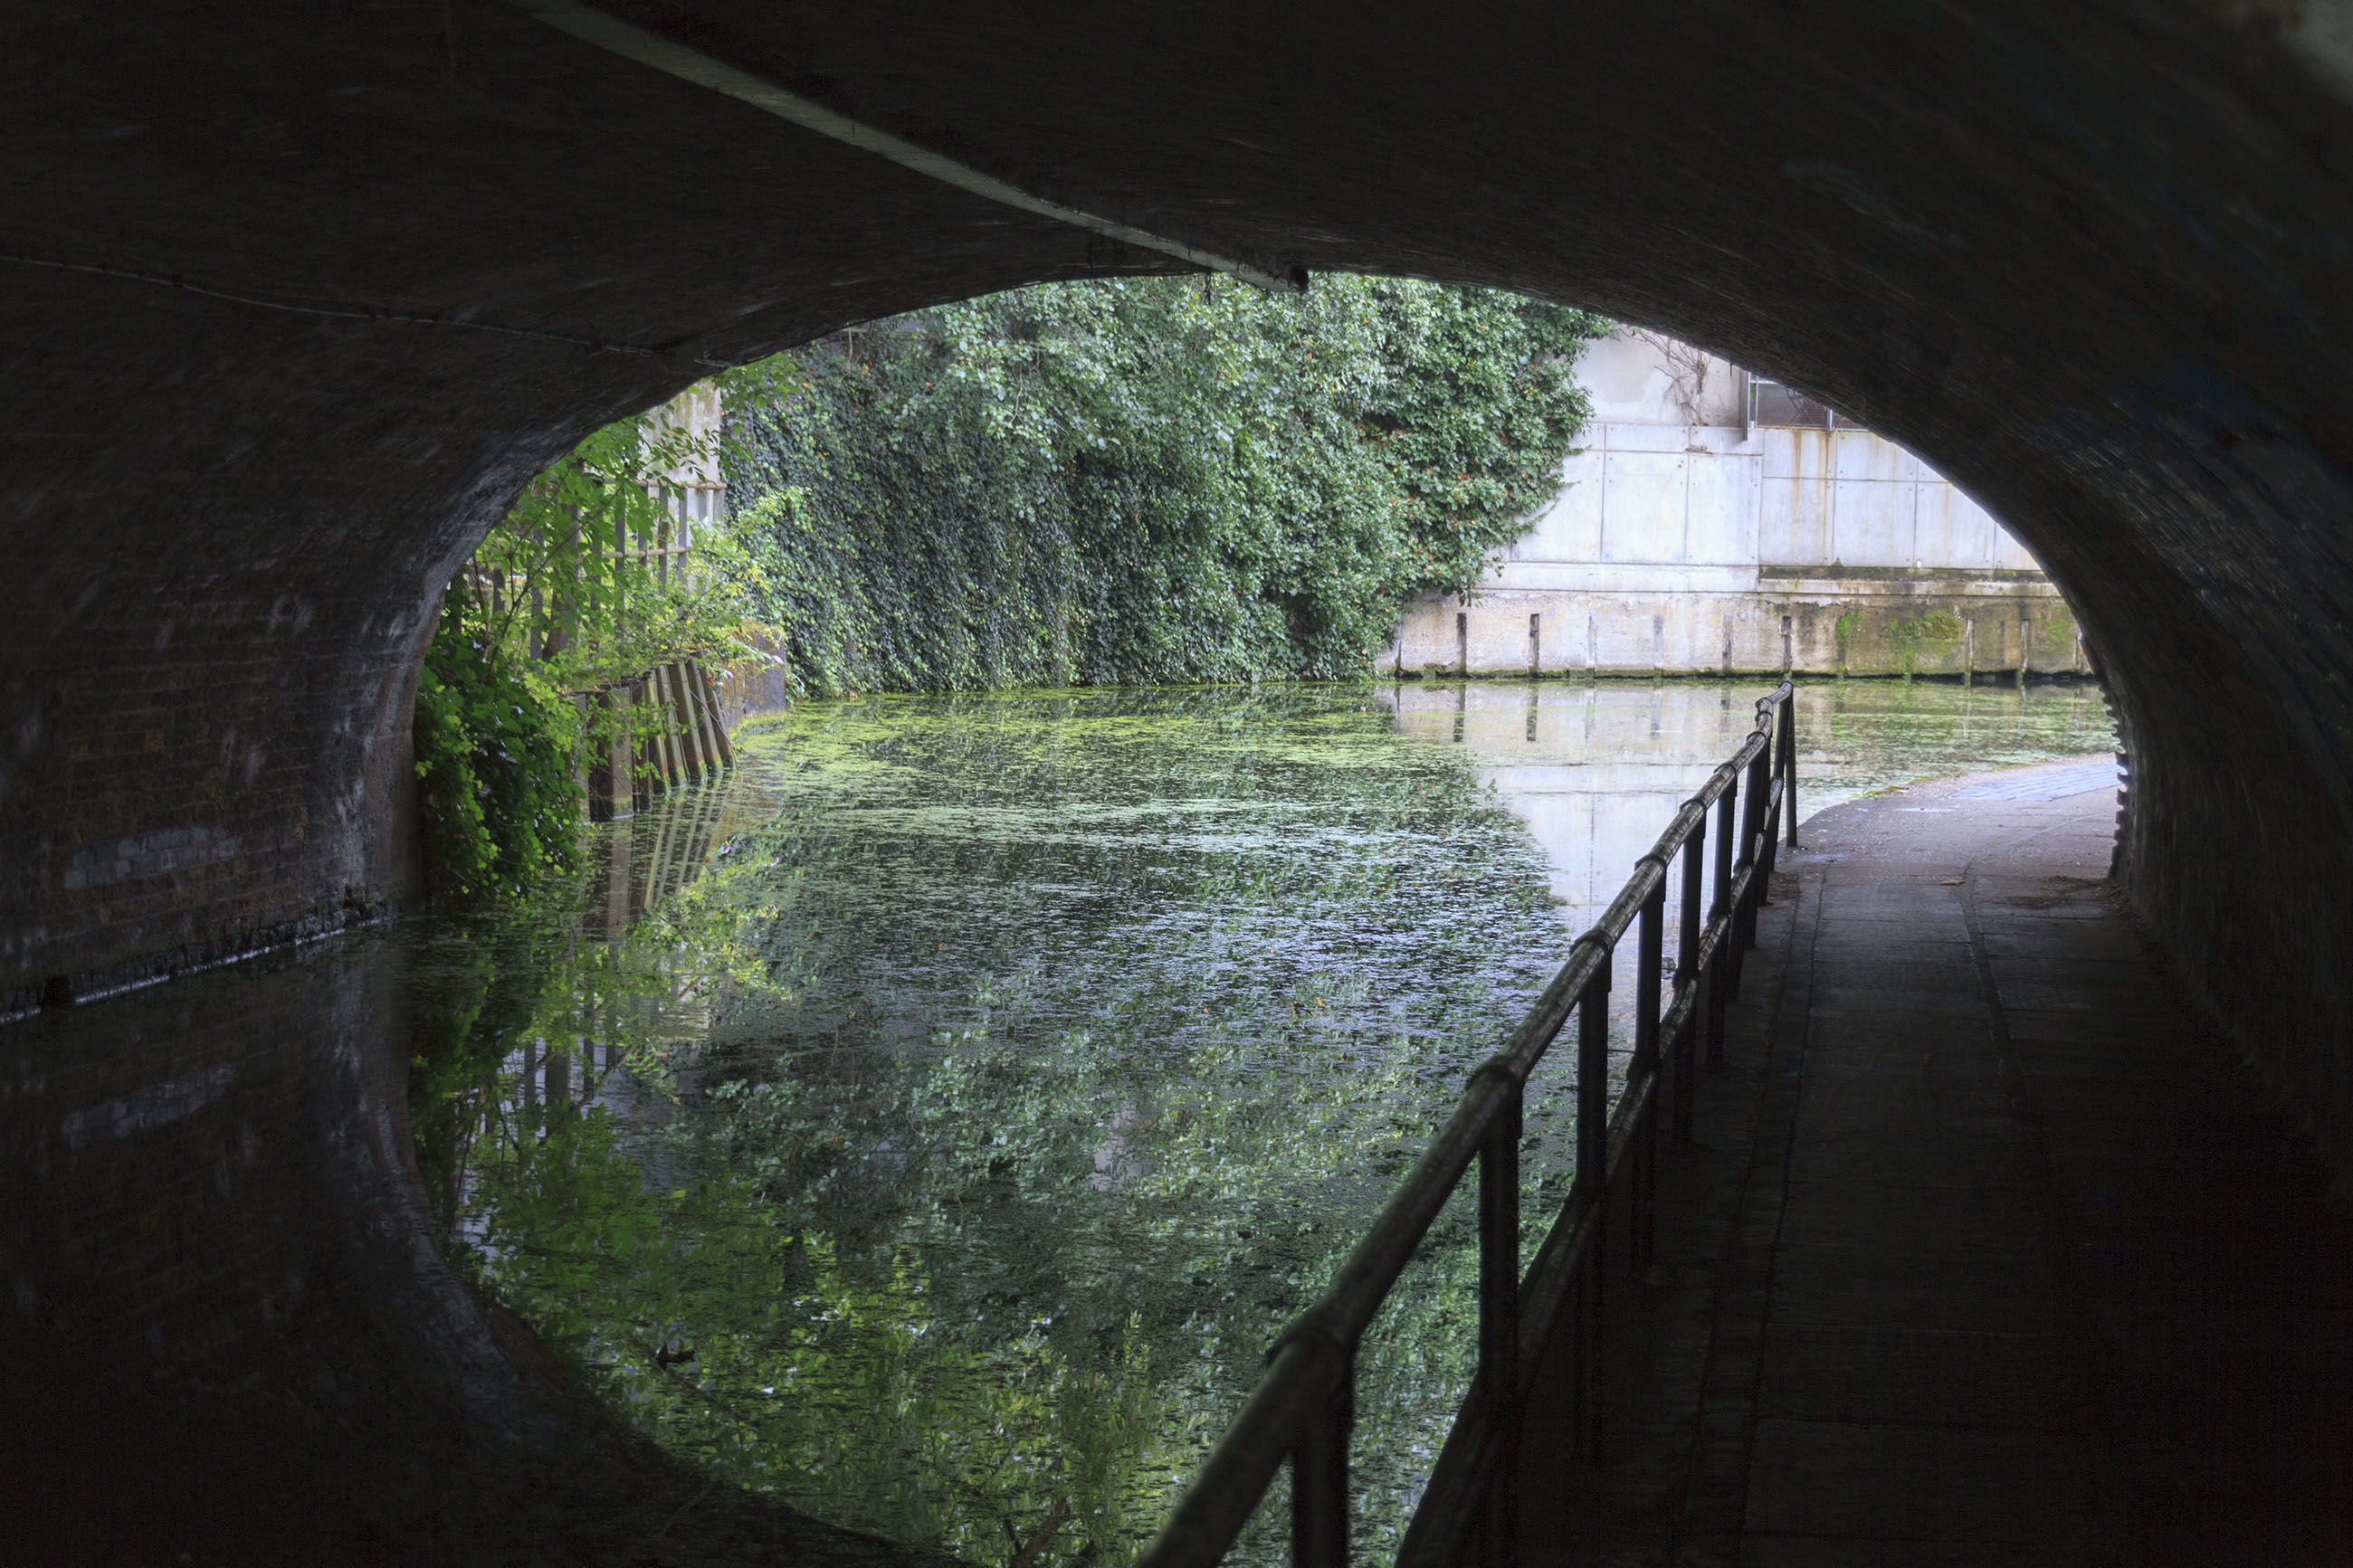 Canal in camden town, london photo